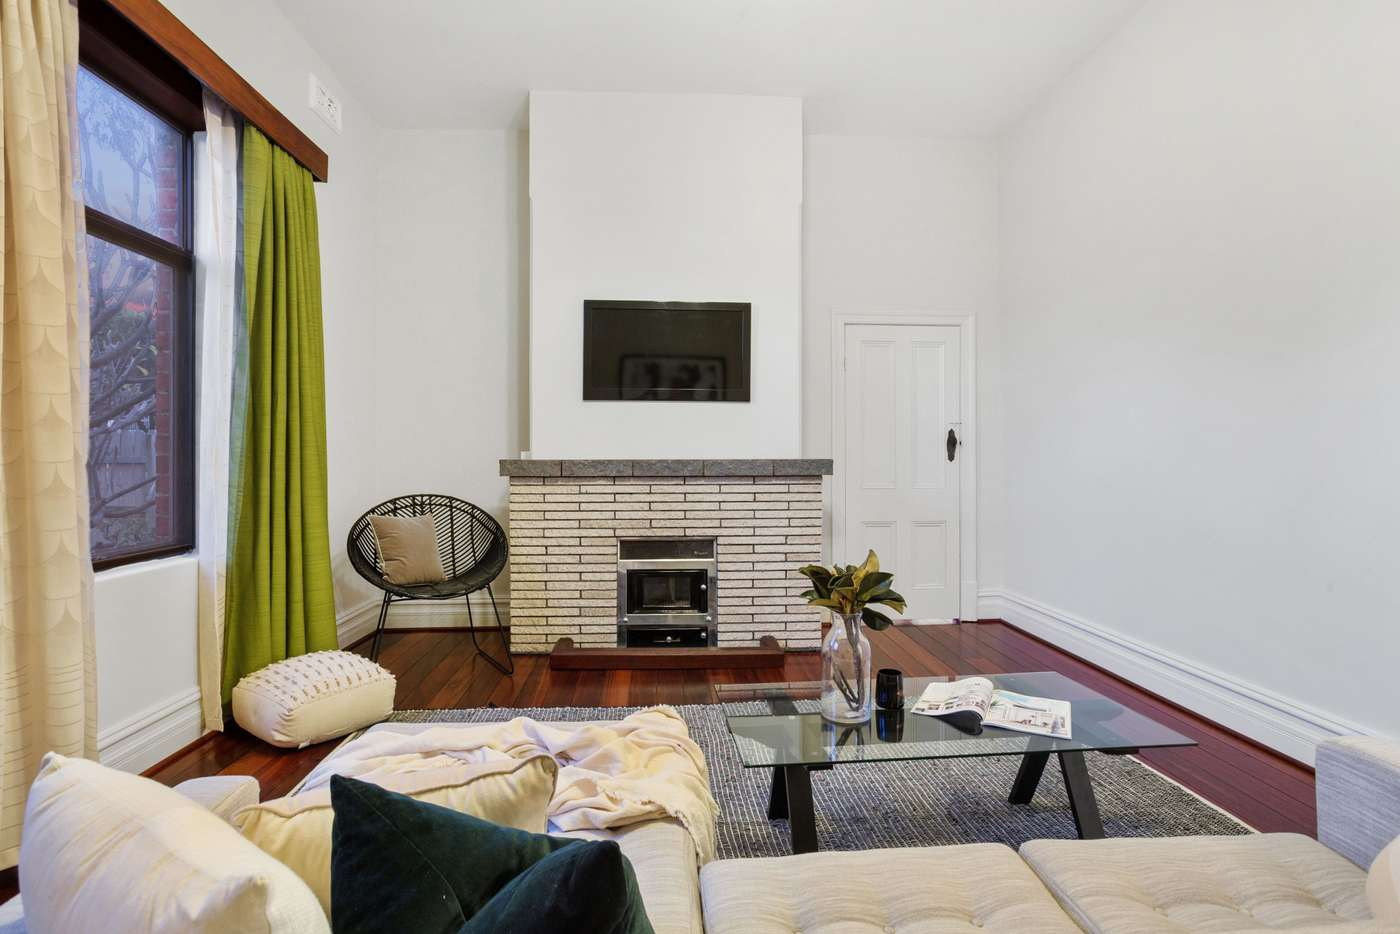 Sixth view of Homely house listing, 123A Chelmsford Road, North Perth WA 6006